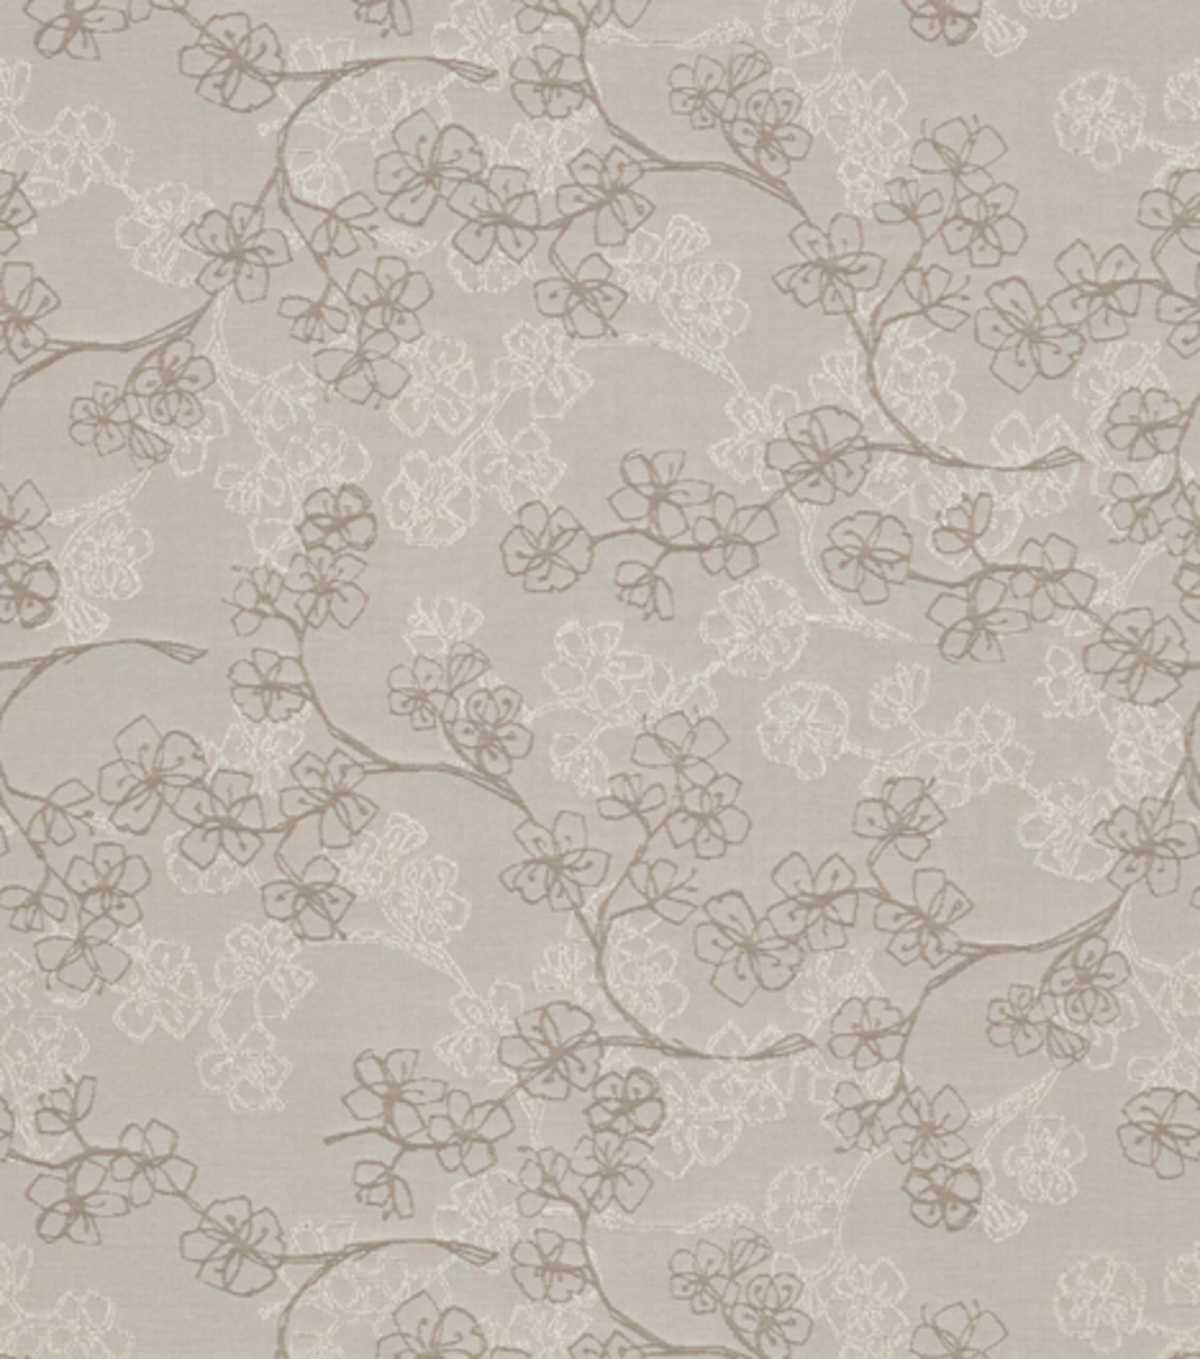 Home Decor 8\u0022x8\u0022 Fabric Swatch-Silken Petals Stone